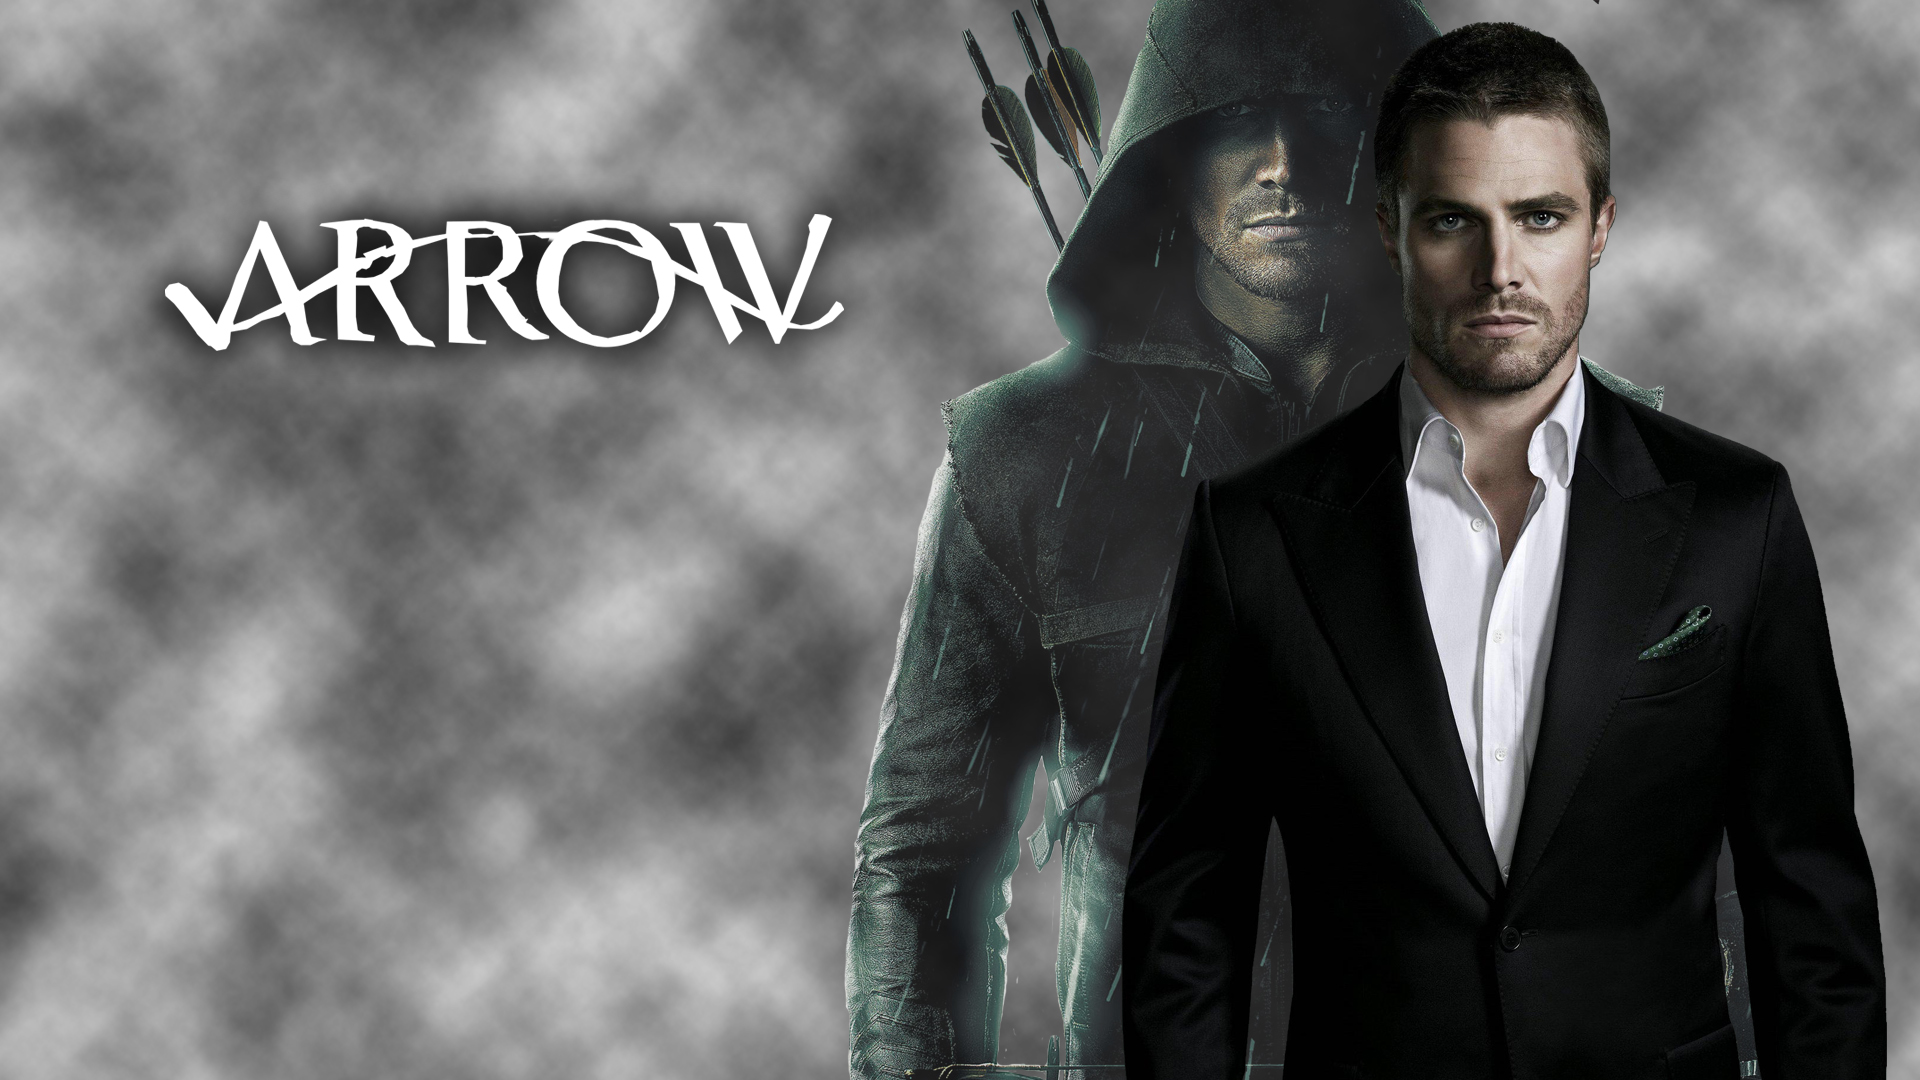 Arrow images Oliver Queen HD wallpaper and background photos